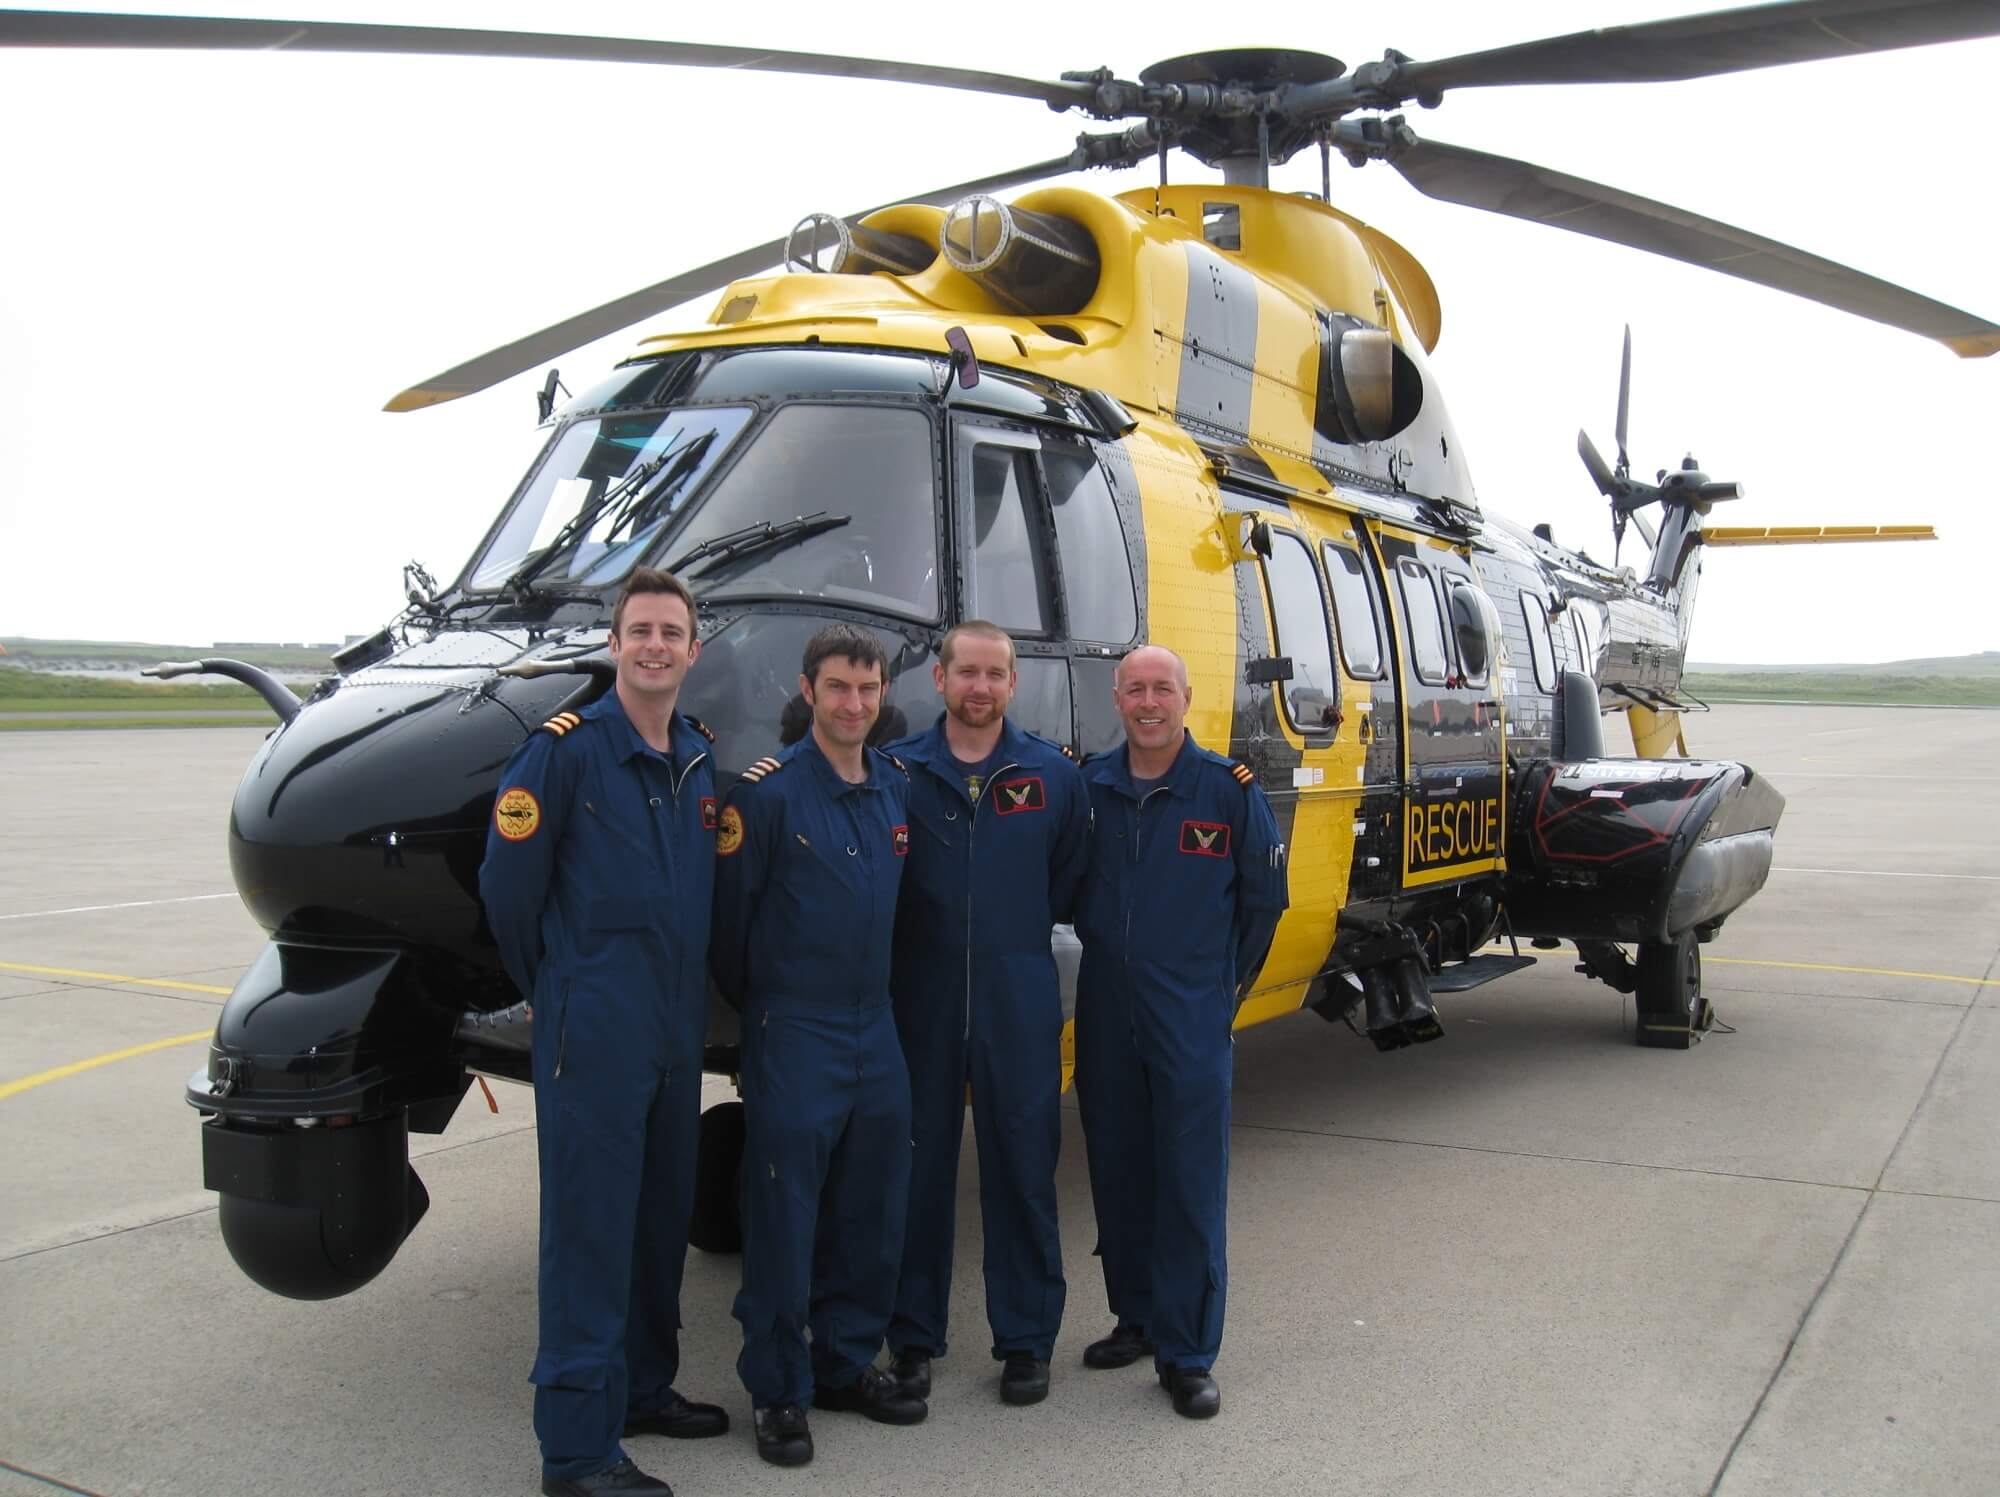 Past Skill and Gallantry Awards Helicopter